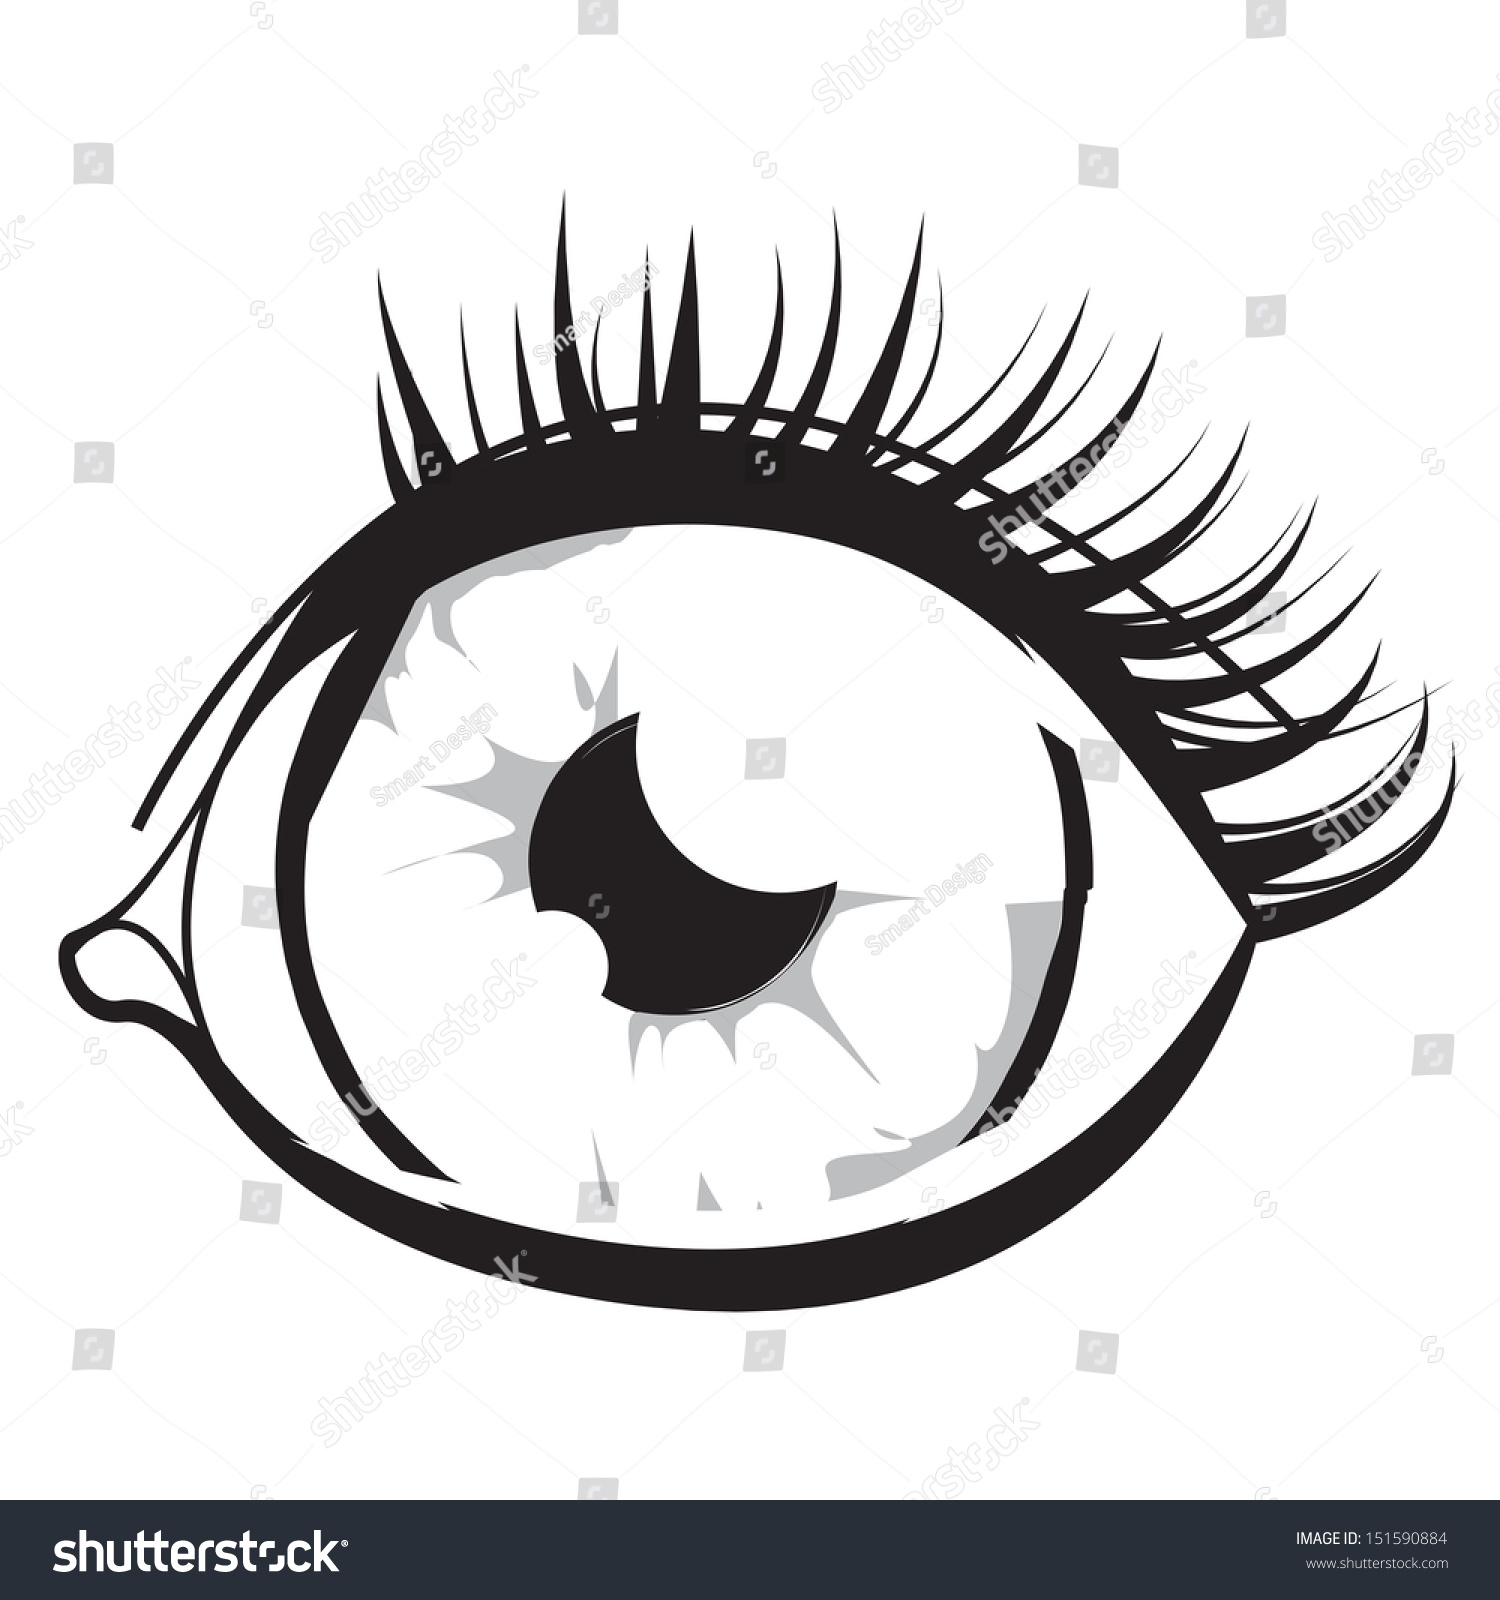 Abstract Eye Background Vector Illustration Graphic Stock ...